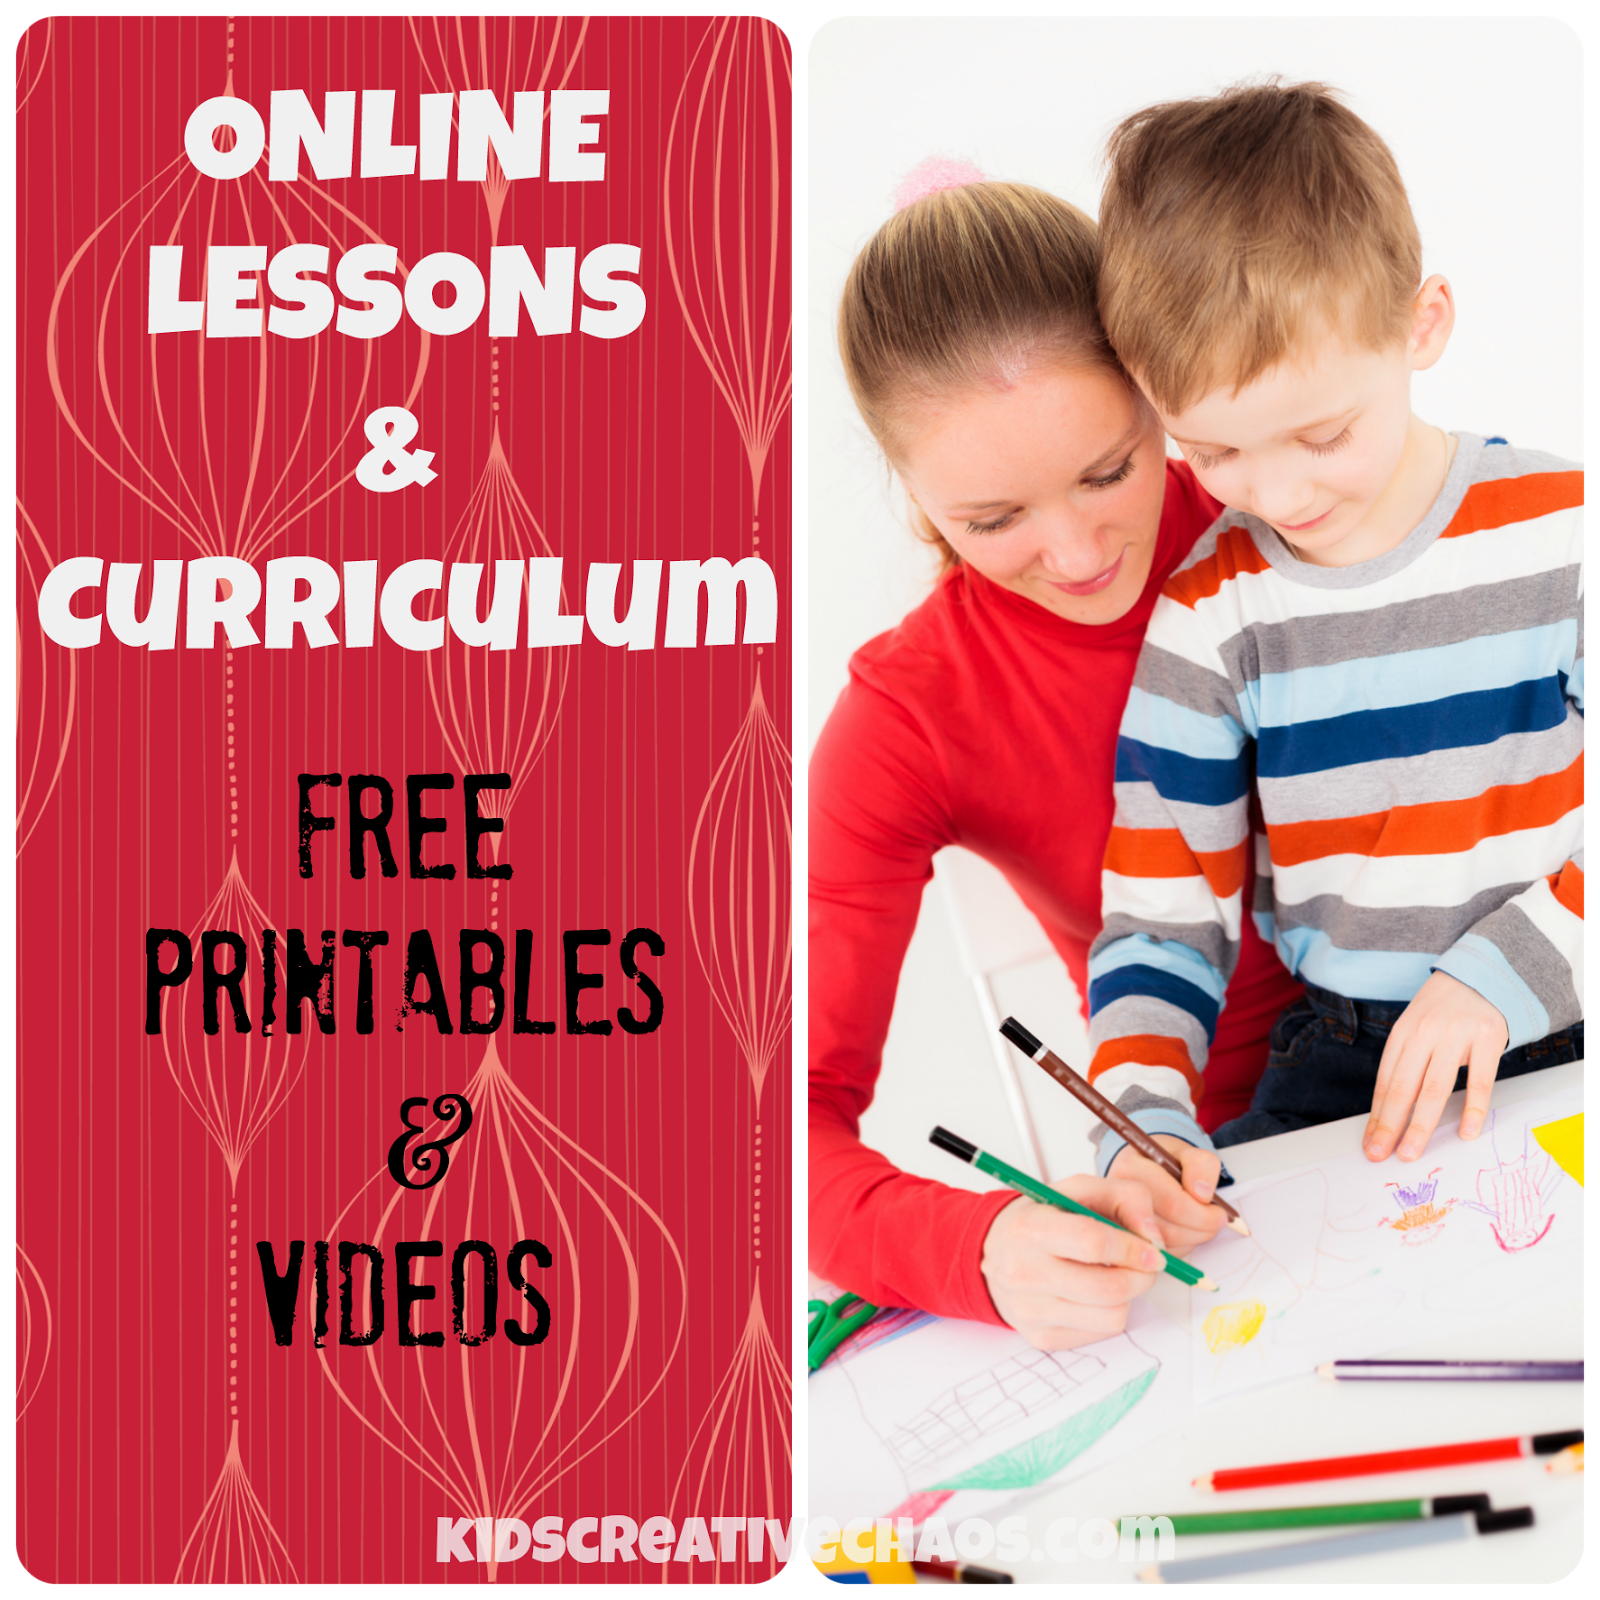 Worksheet Homeschool Curriculum Free Online kids creative chaos homeschool projects homeschooling curriculum worksheets and lesson plans